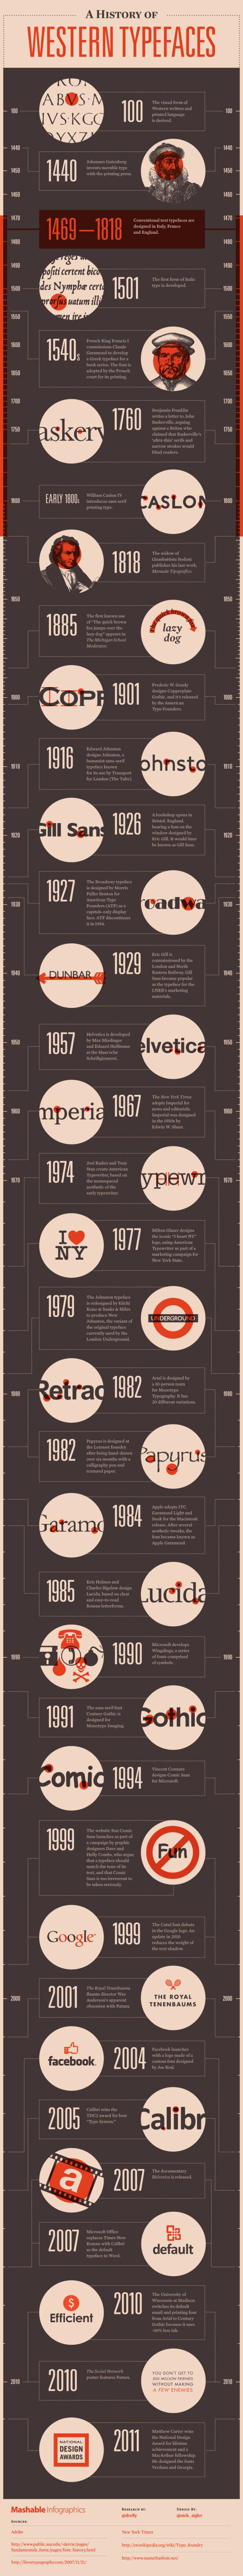 typeface-history